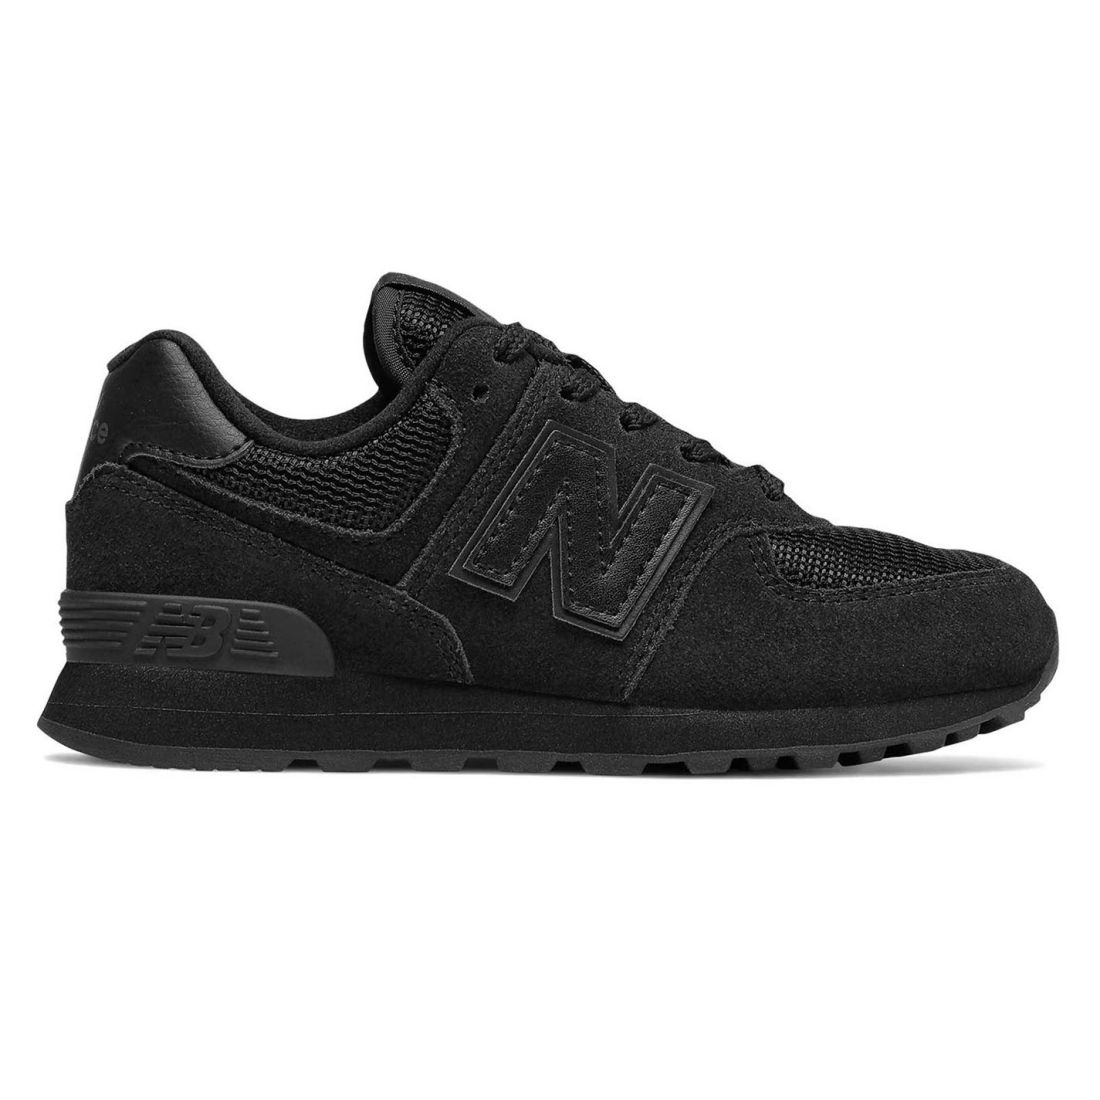 574 Trainers Runners New Classic Balance Lace Kids Juniors Up Mesh UzMSVp